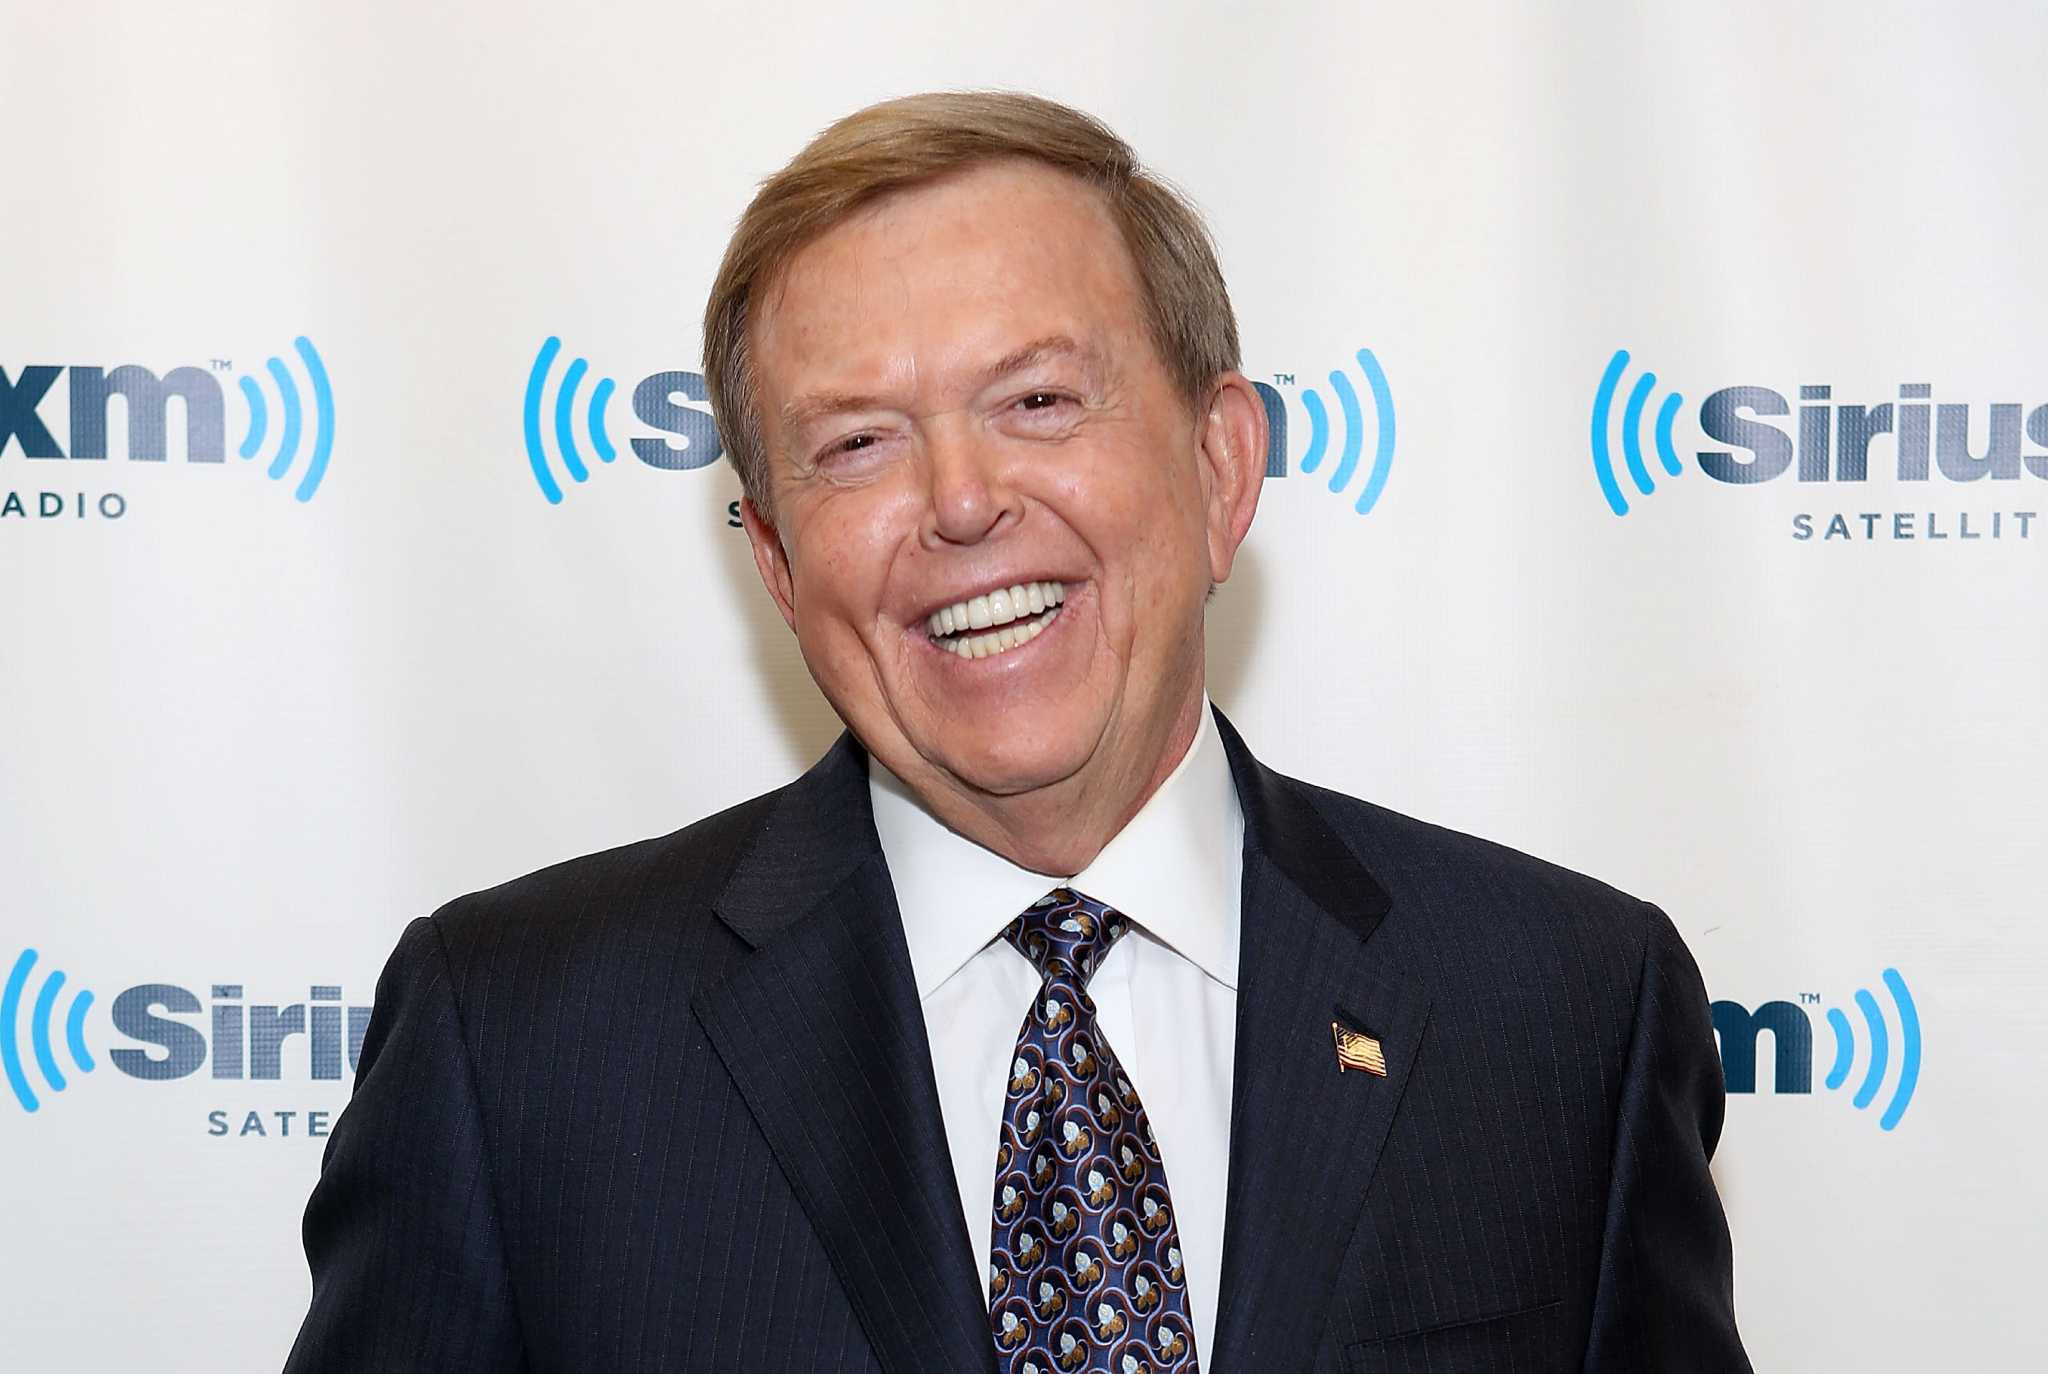 Fox S Dobbs Says Obama Should Be Arrested For Implying